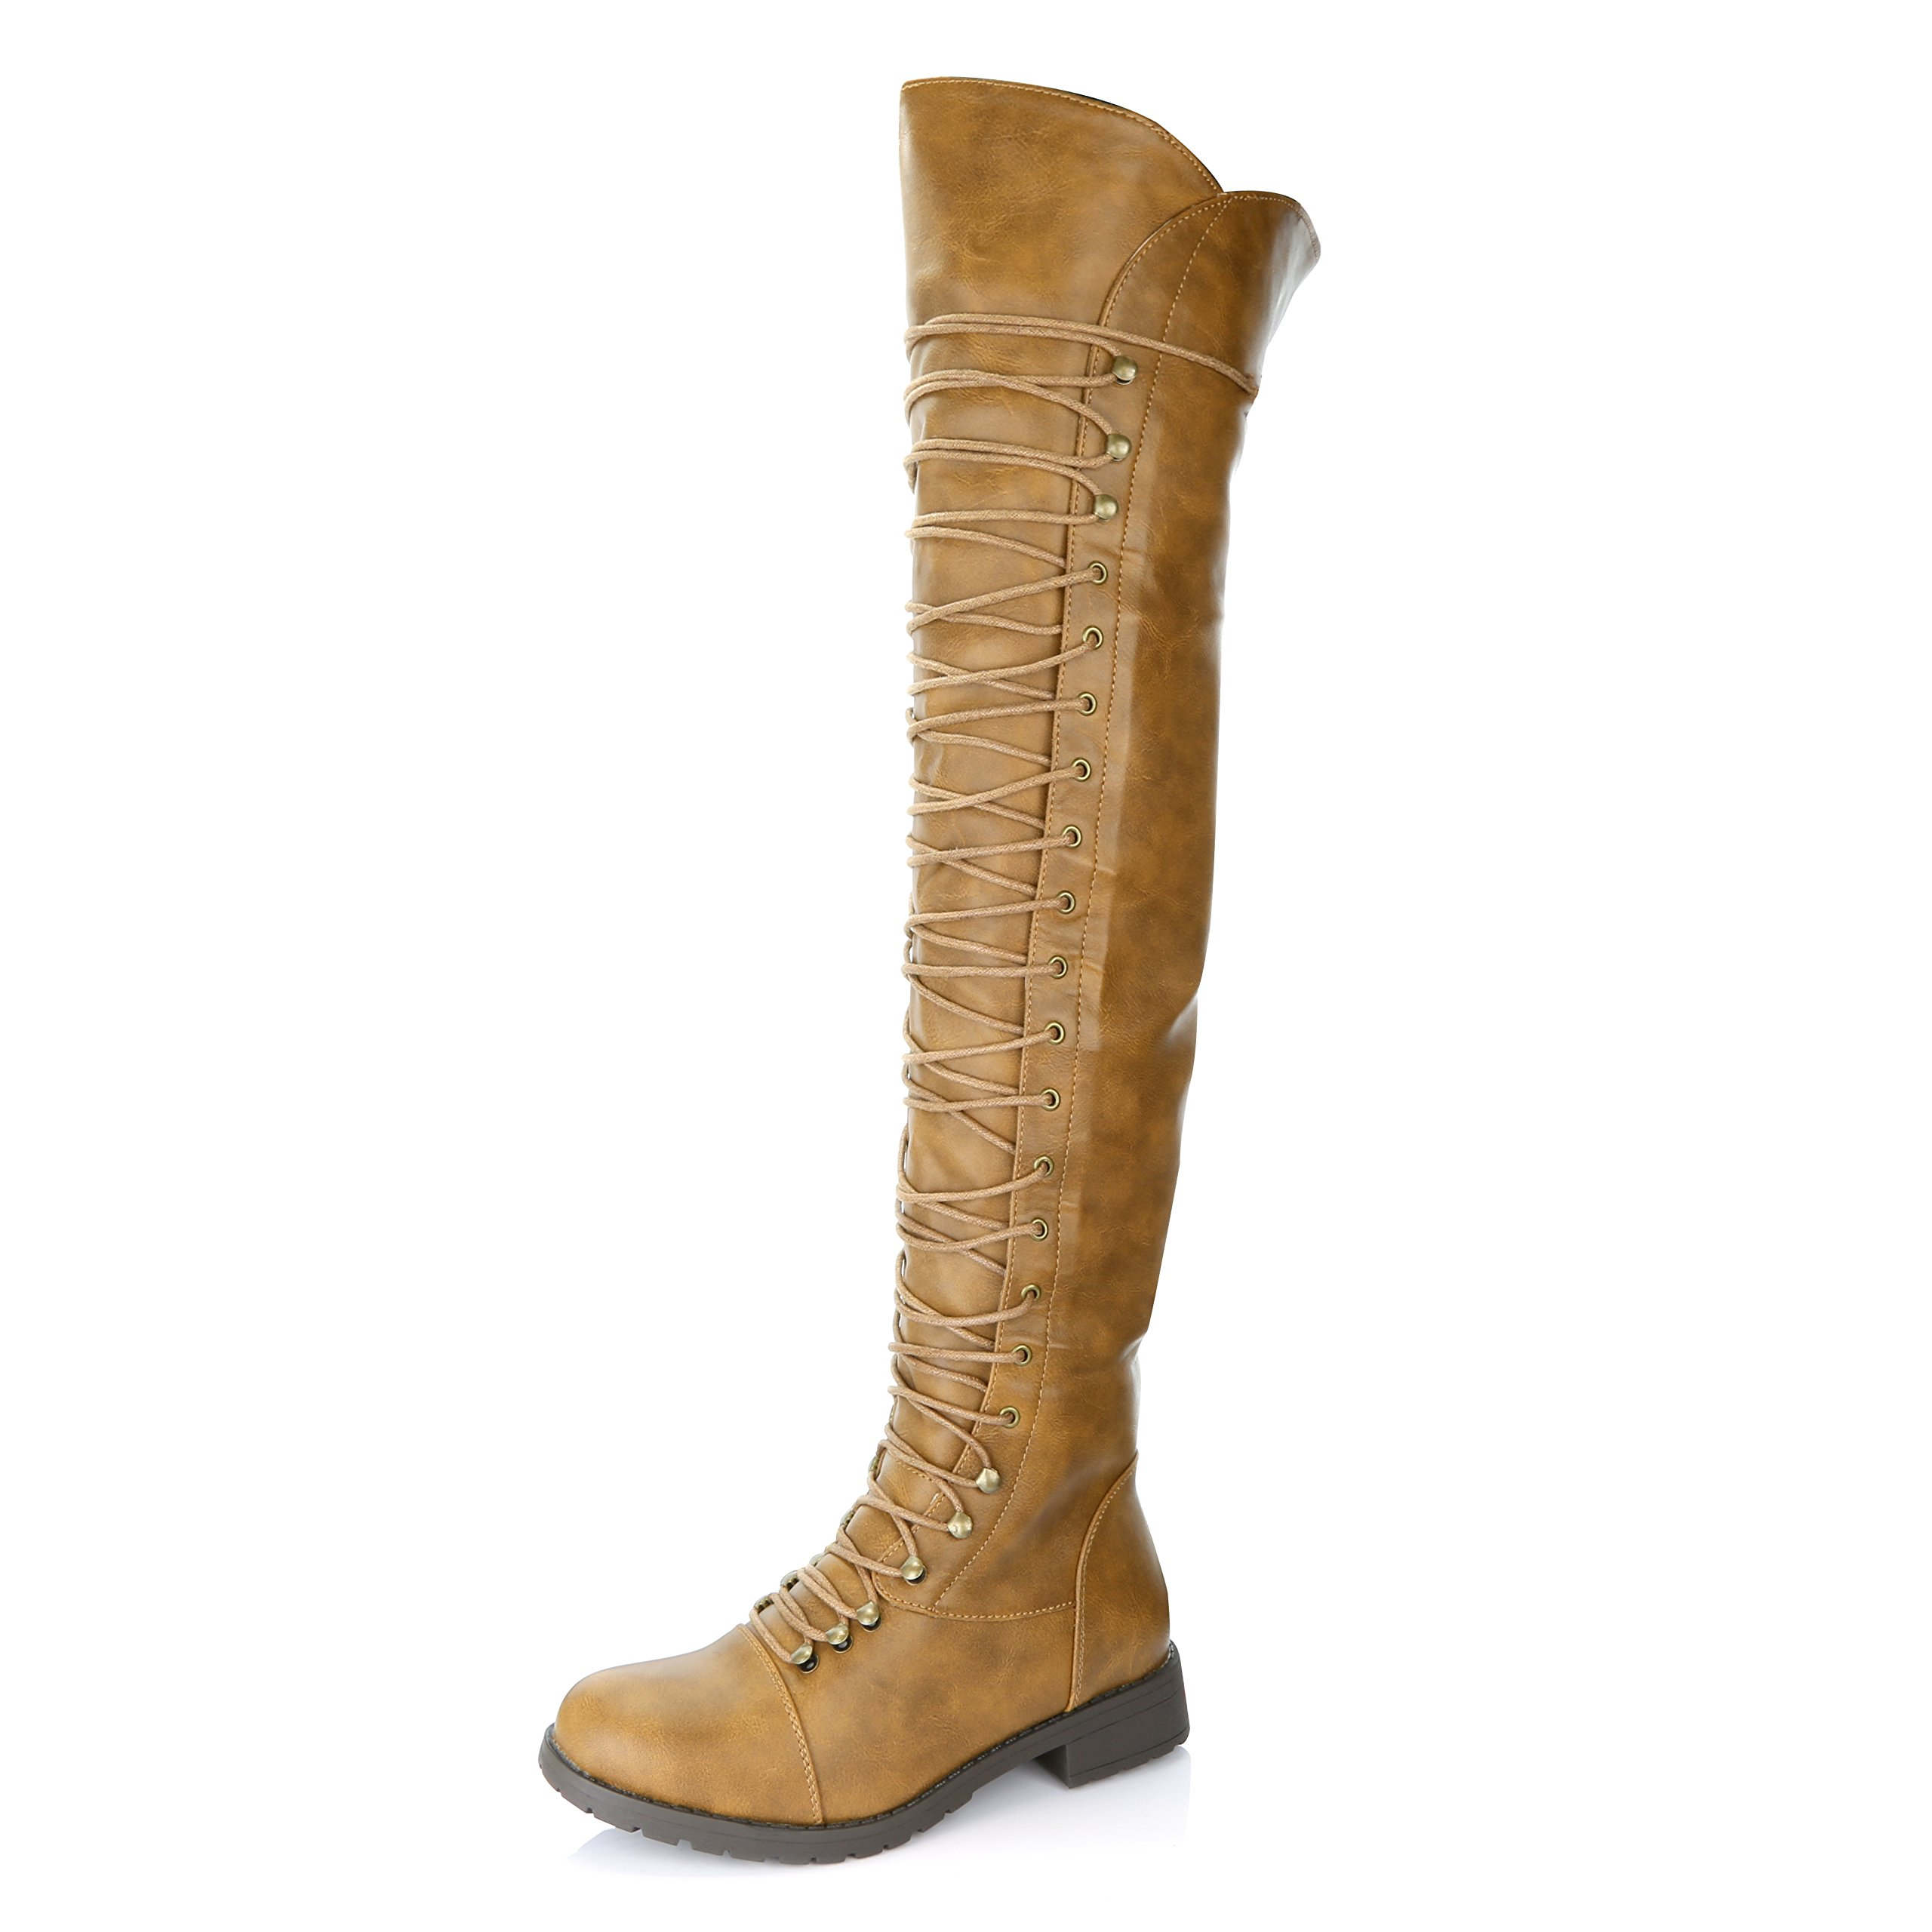 DailyShoes Women's Lace up Thigh High Boots - Vegan Easy Lace up Design with Zipper Trendy Mility Style Boot, Tan PU, 11 B(M) US